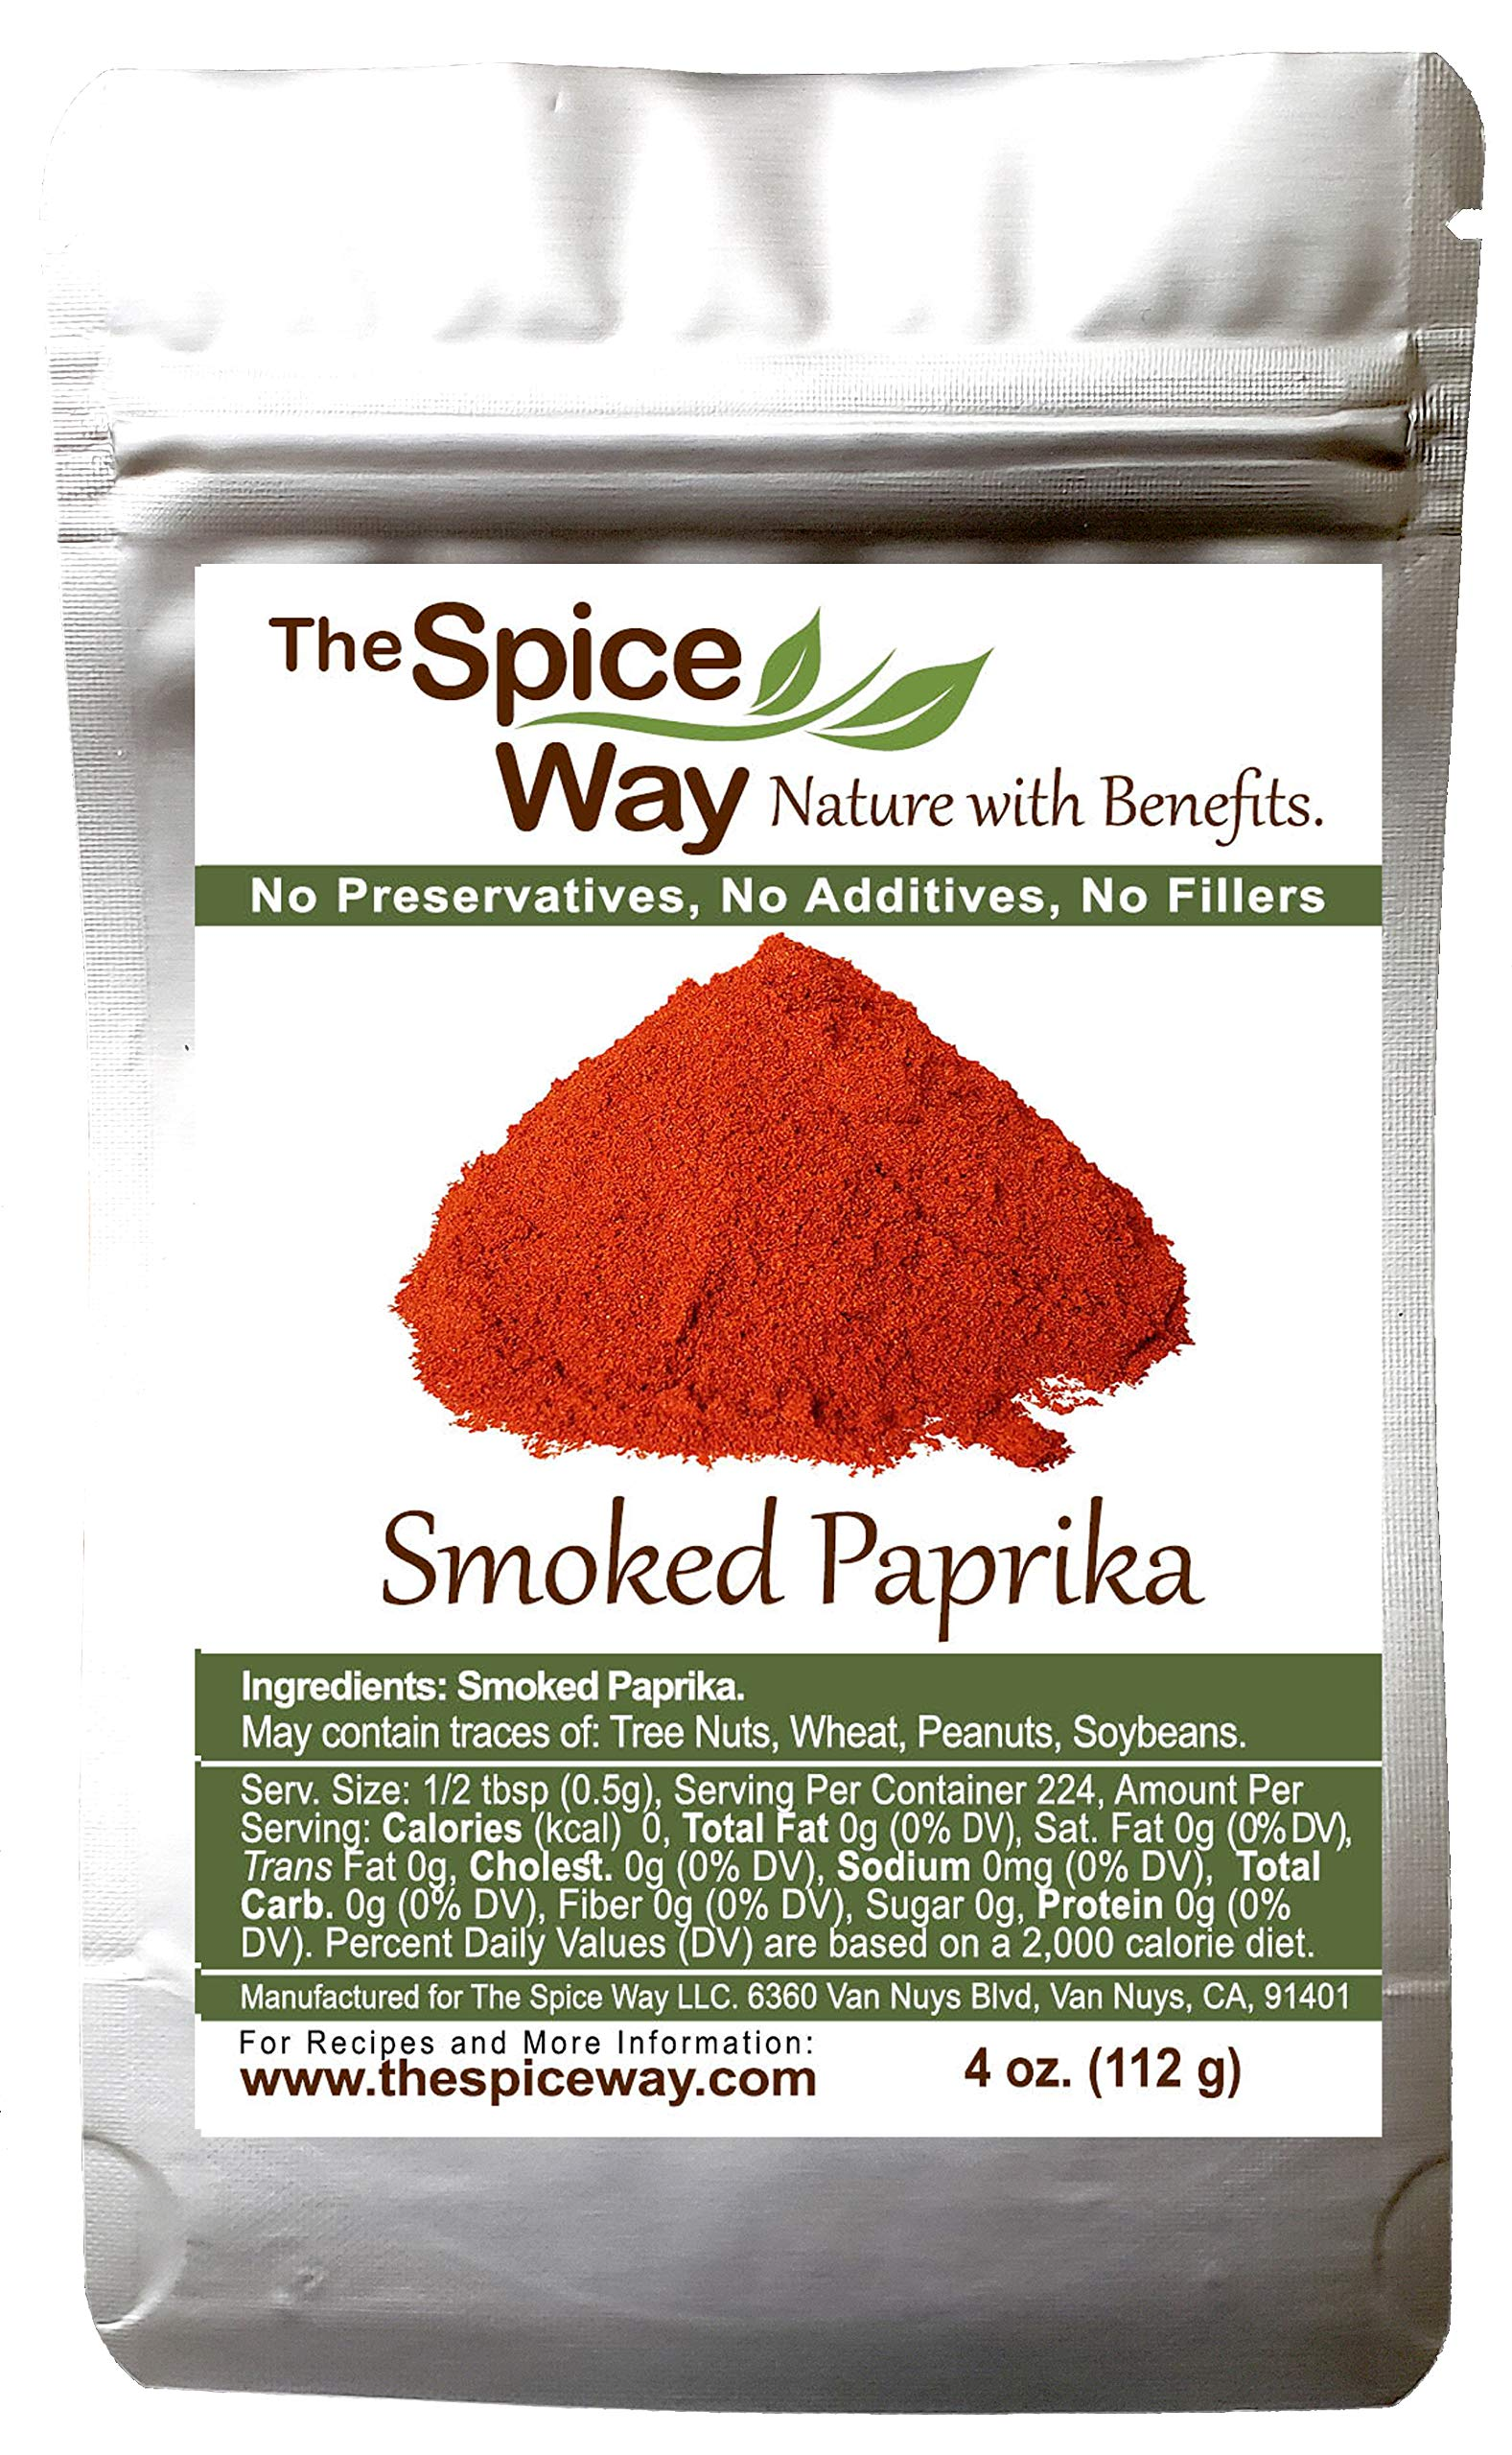 The Spice Way Smoked Paprika - pure, no additives, Non-GMO, no preservatives, no fillers. Authenticly smoked with herbs.4 oz resealable bag